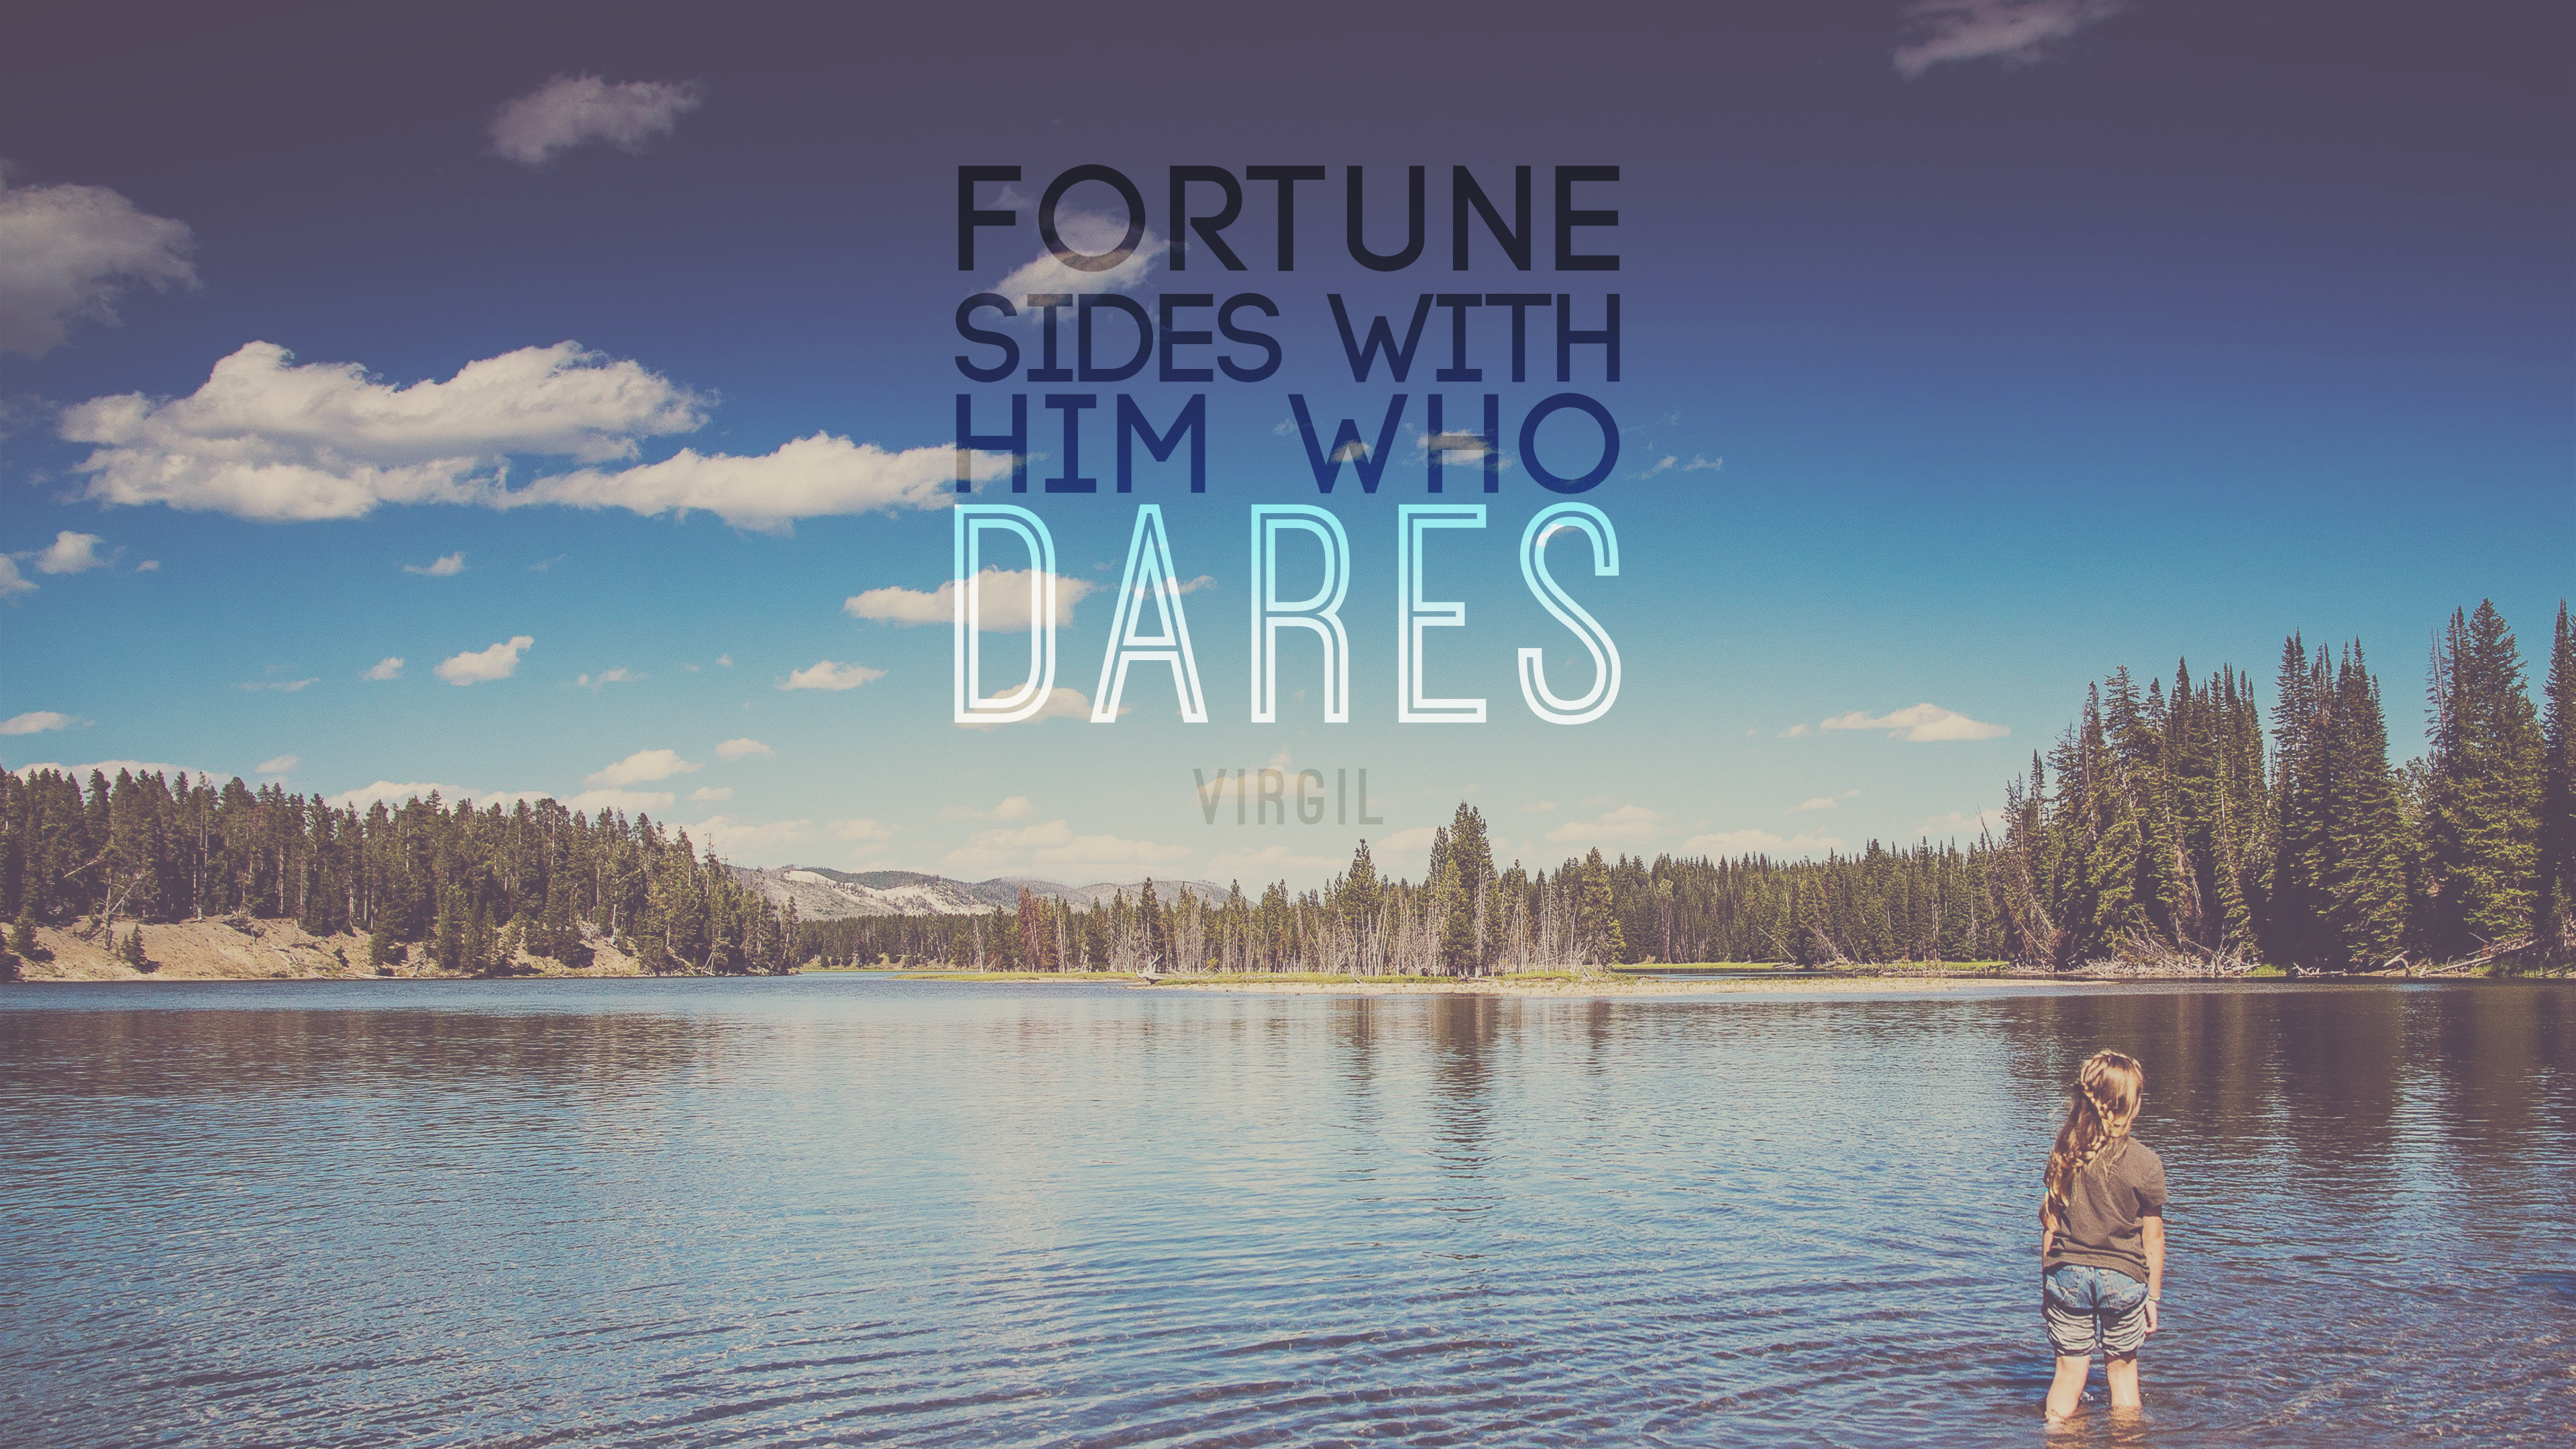 Fortune Sides With Him Who Dares. Virgil